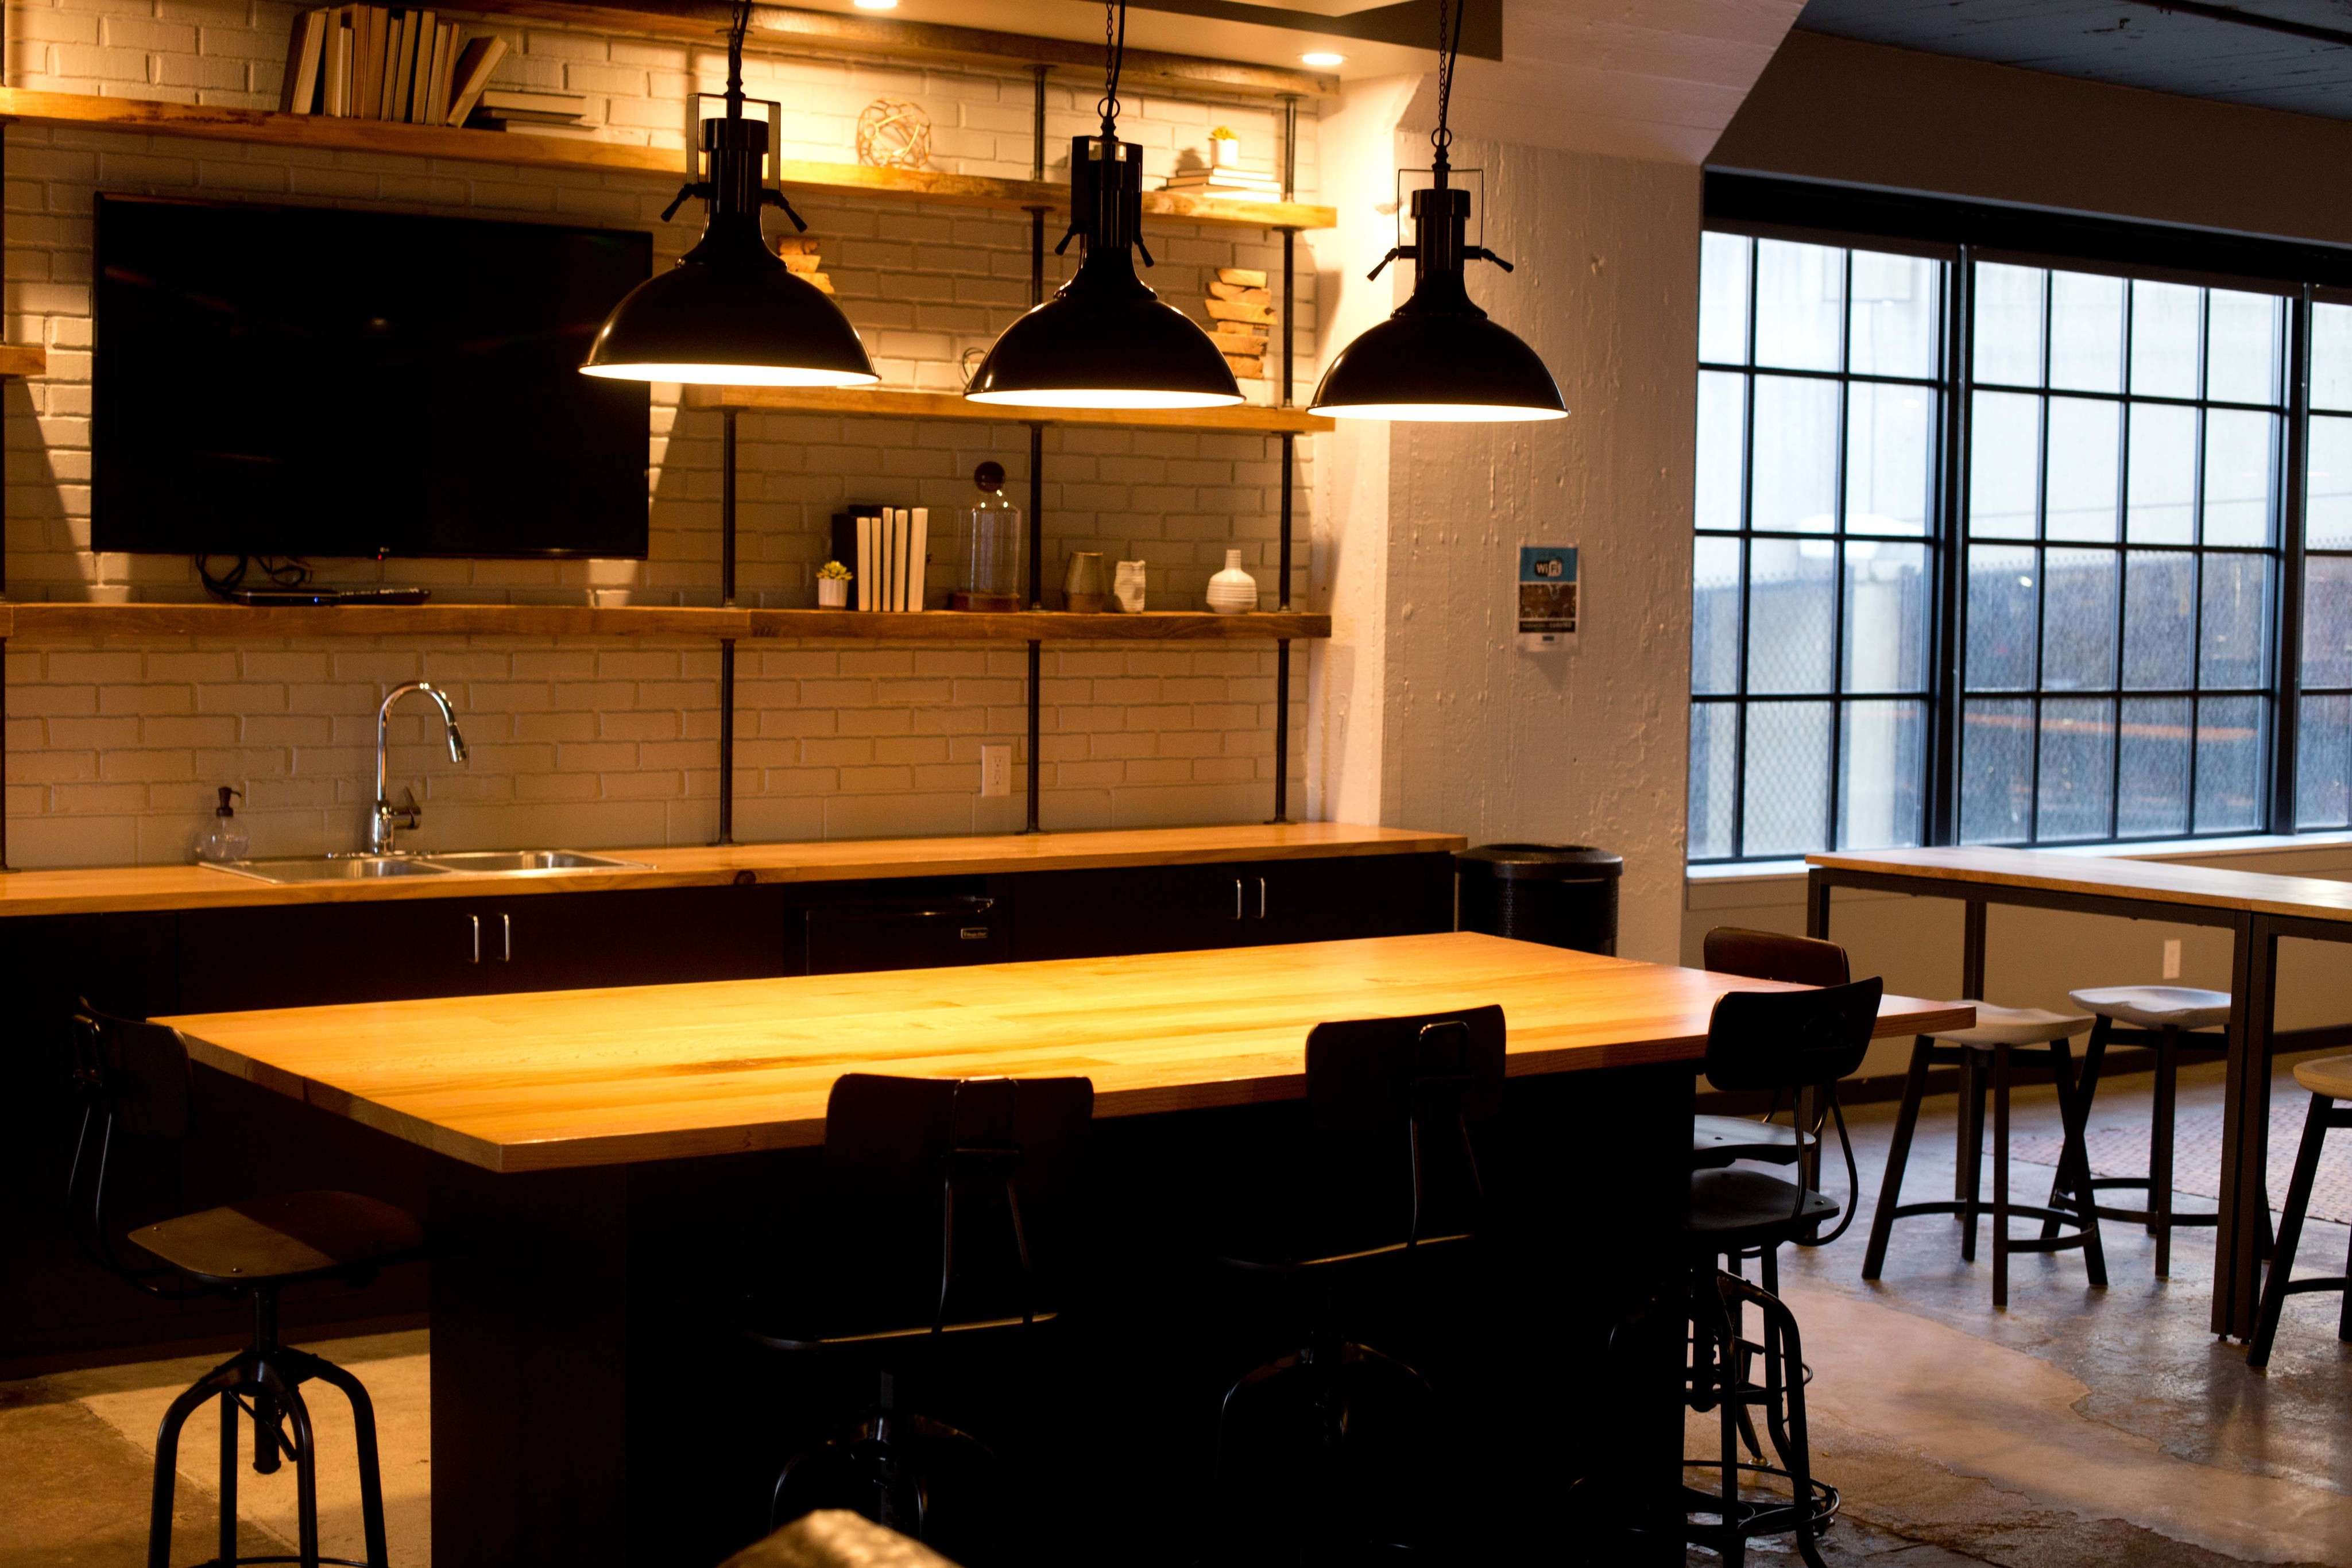 Indoor bar and kitchenette area